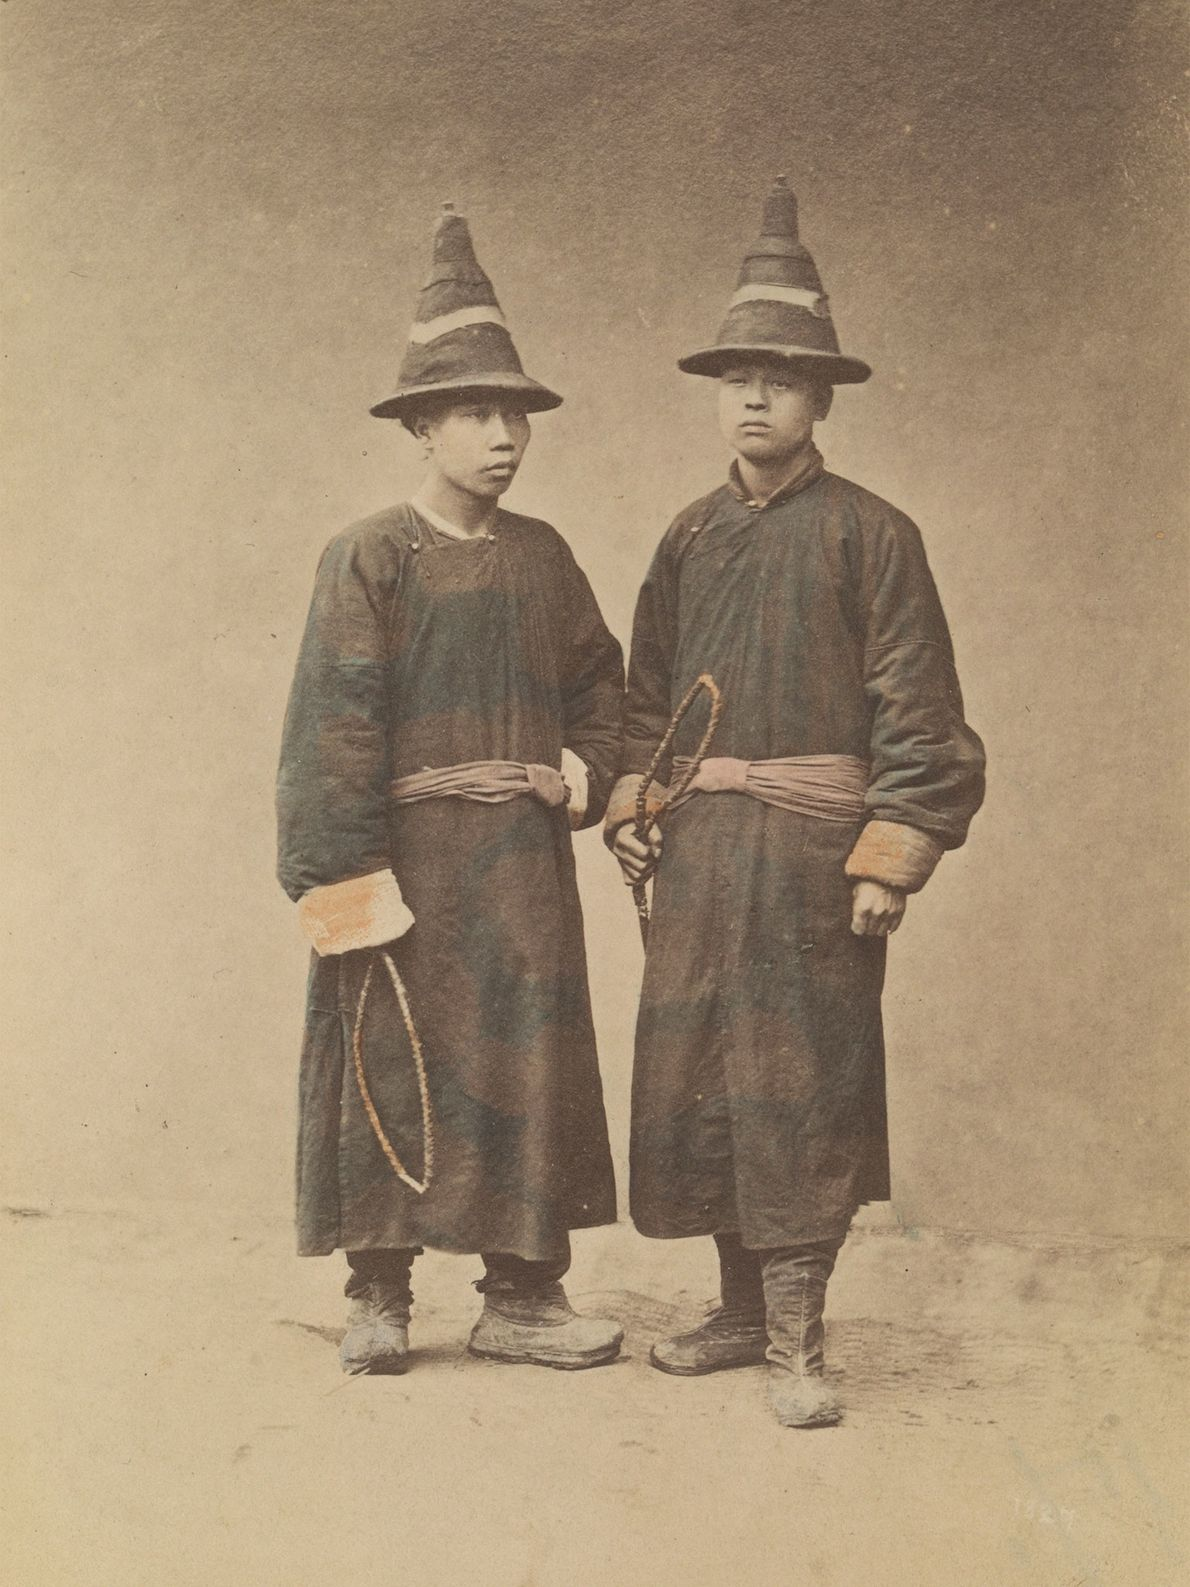 Runner boys from the late 1800s wear hats made of hardy fabric while working to catch ...